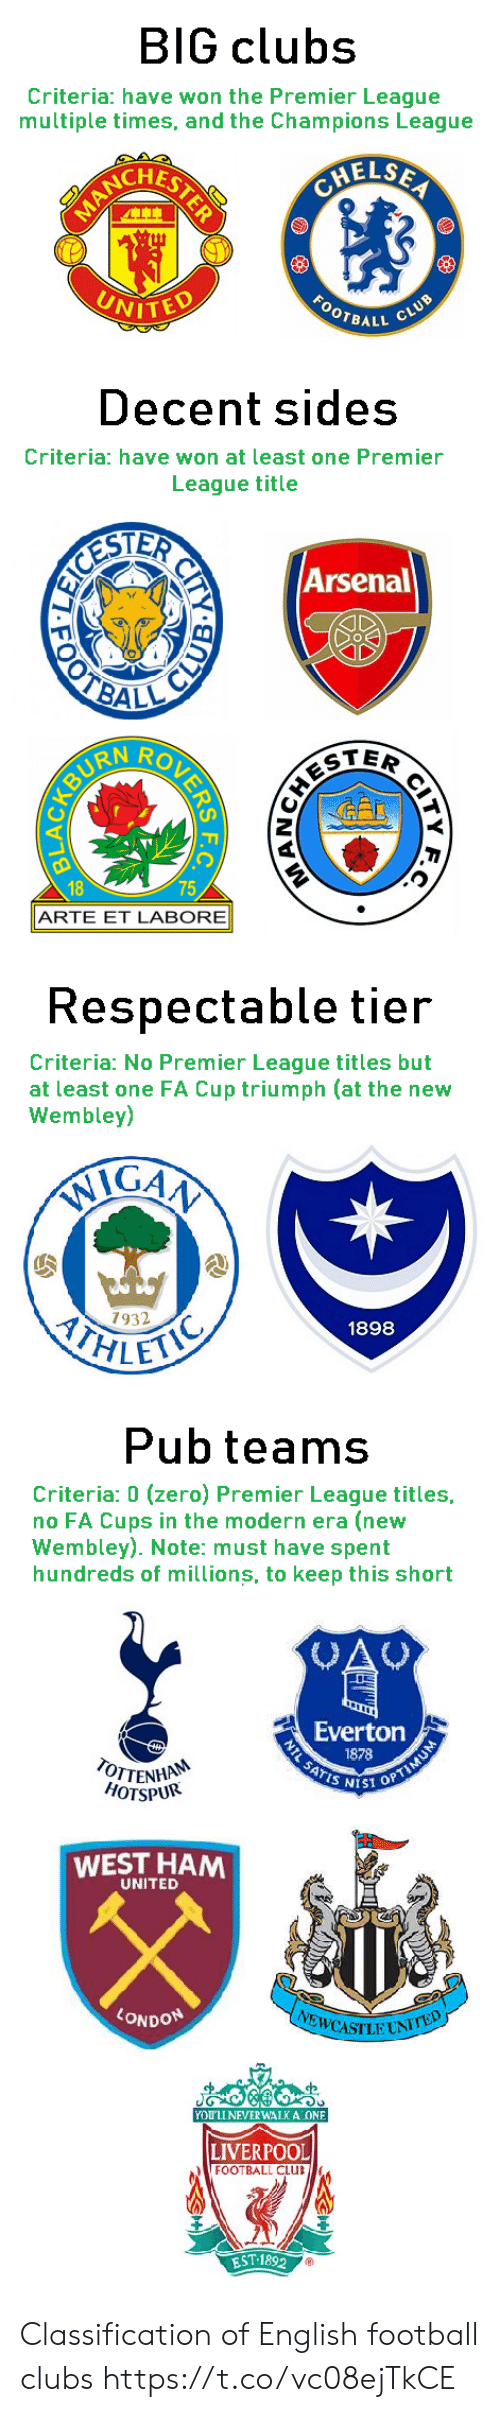 Sides: BIG clubs  Criteria: have won the Premier League  multiple times, and the Champions League  CHELSEA  ACRLSTERE  FOOTRALL CLUB  UNITED   Decent sides  Criteria: have won at least one Premier  League title  ESTER  OTBAL  Arsenal  TER  18  75  ARTE ET LABORE  CITY  र य श क  URENBYD   Respectable tier  Criteria: No Premier League titles but  at least one FA Cup triumph (at the new  Wembley)  IGAA  ITHLET  7932  1898   Pub teams  Criteria: 0 (zero) Premier League titles,  no FA Cups in the modern era (new  Wembley). Note: must have spent  hundreds of millions, to keep this short  CAU  Everton  1878  NTL SATIS SST OPTIMUM  OTTENHA  HOTSPUR  WEST HAM  UNITED  LONDON  EWCASILUNITED  YOU'LL NEVER WALKA ONE  LIVERPOOL  FOOTBALL CLUB  EST 1892 Classification of English football clubs https://t.co/vc08ejTkCE